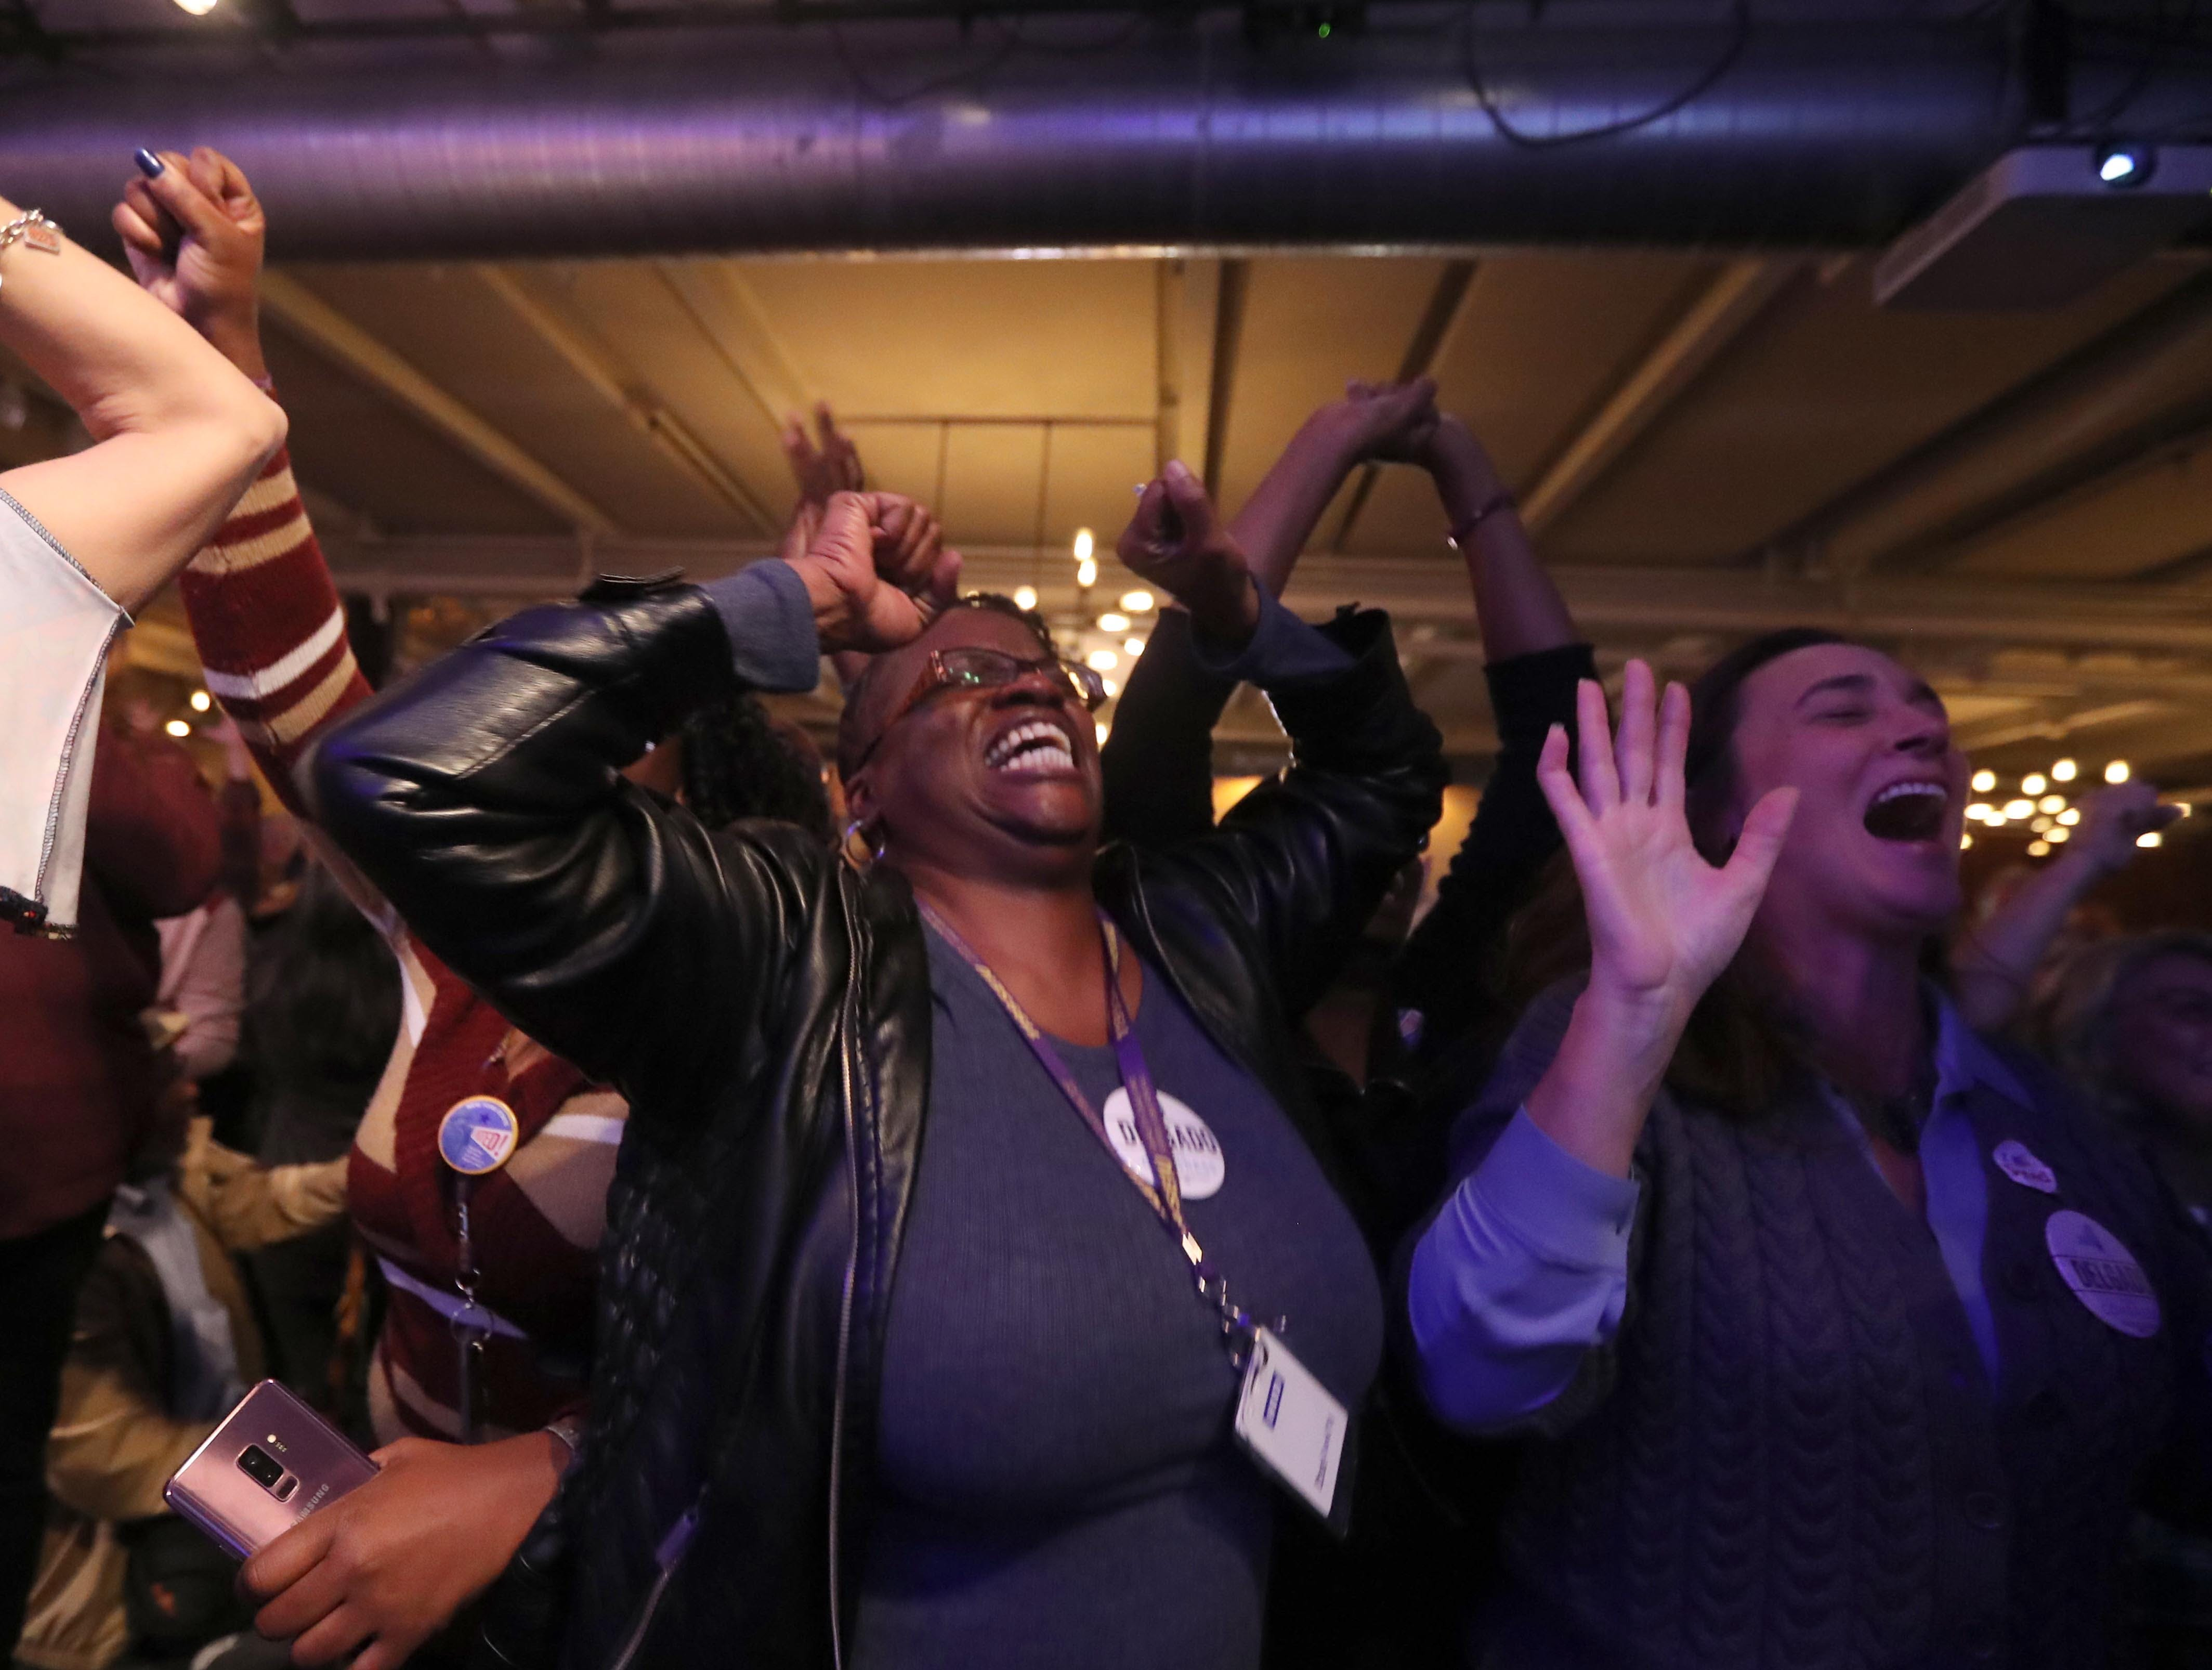 Addie Davis of Poughkeepsie, N.Y. cheers as she and other supporters of congressional candidate Antonio Delgado, watch election results at the Senate Garage in Kingston, N.Y. Nov. 6, 2018. Delgado was running against incumbent Republican John Faso for New York's 19th congressional district seat.